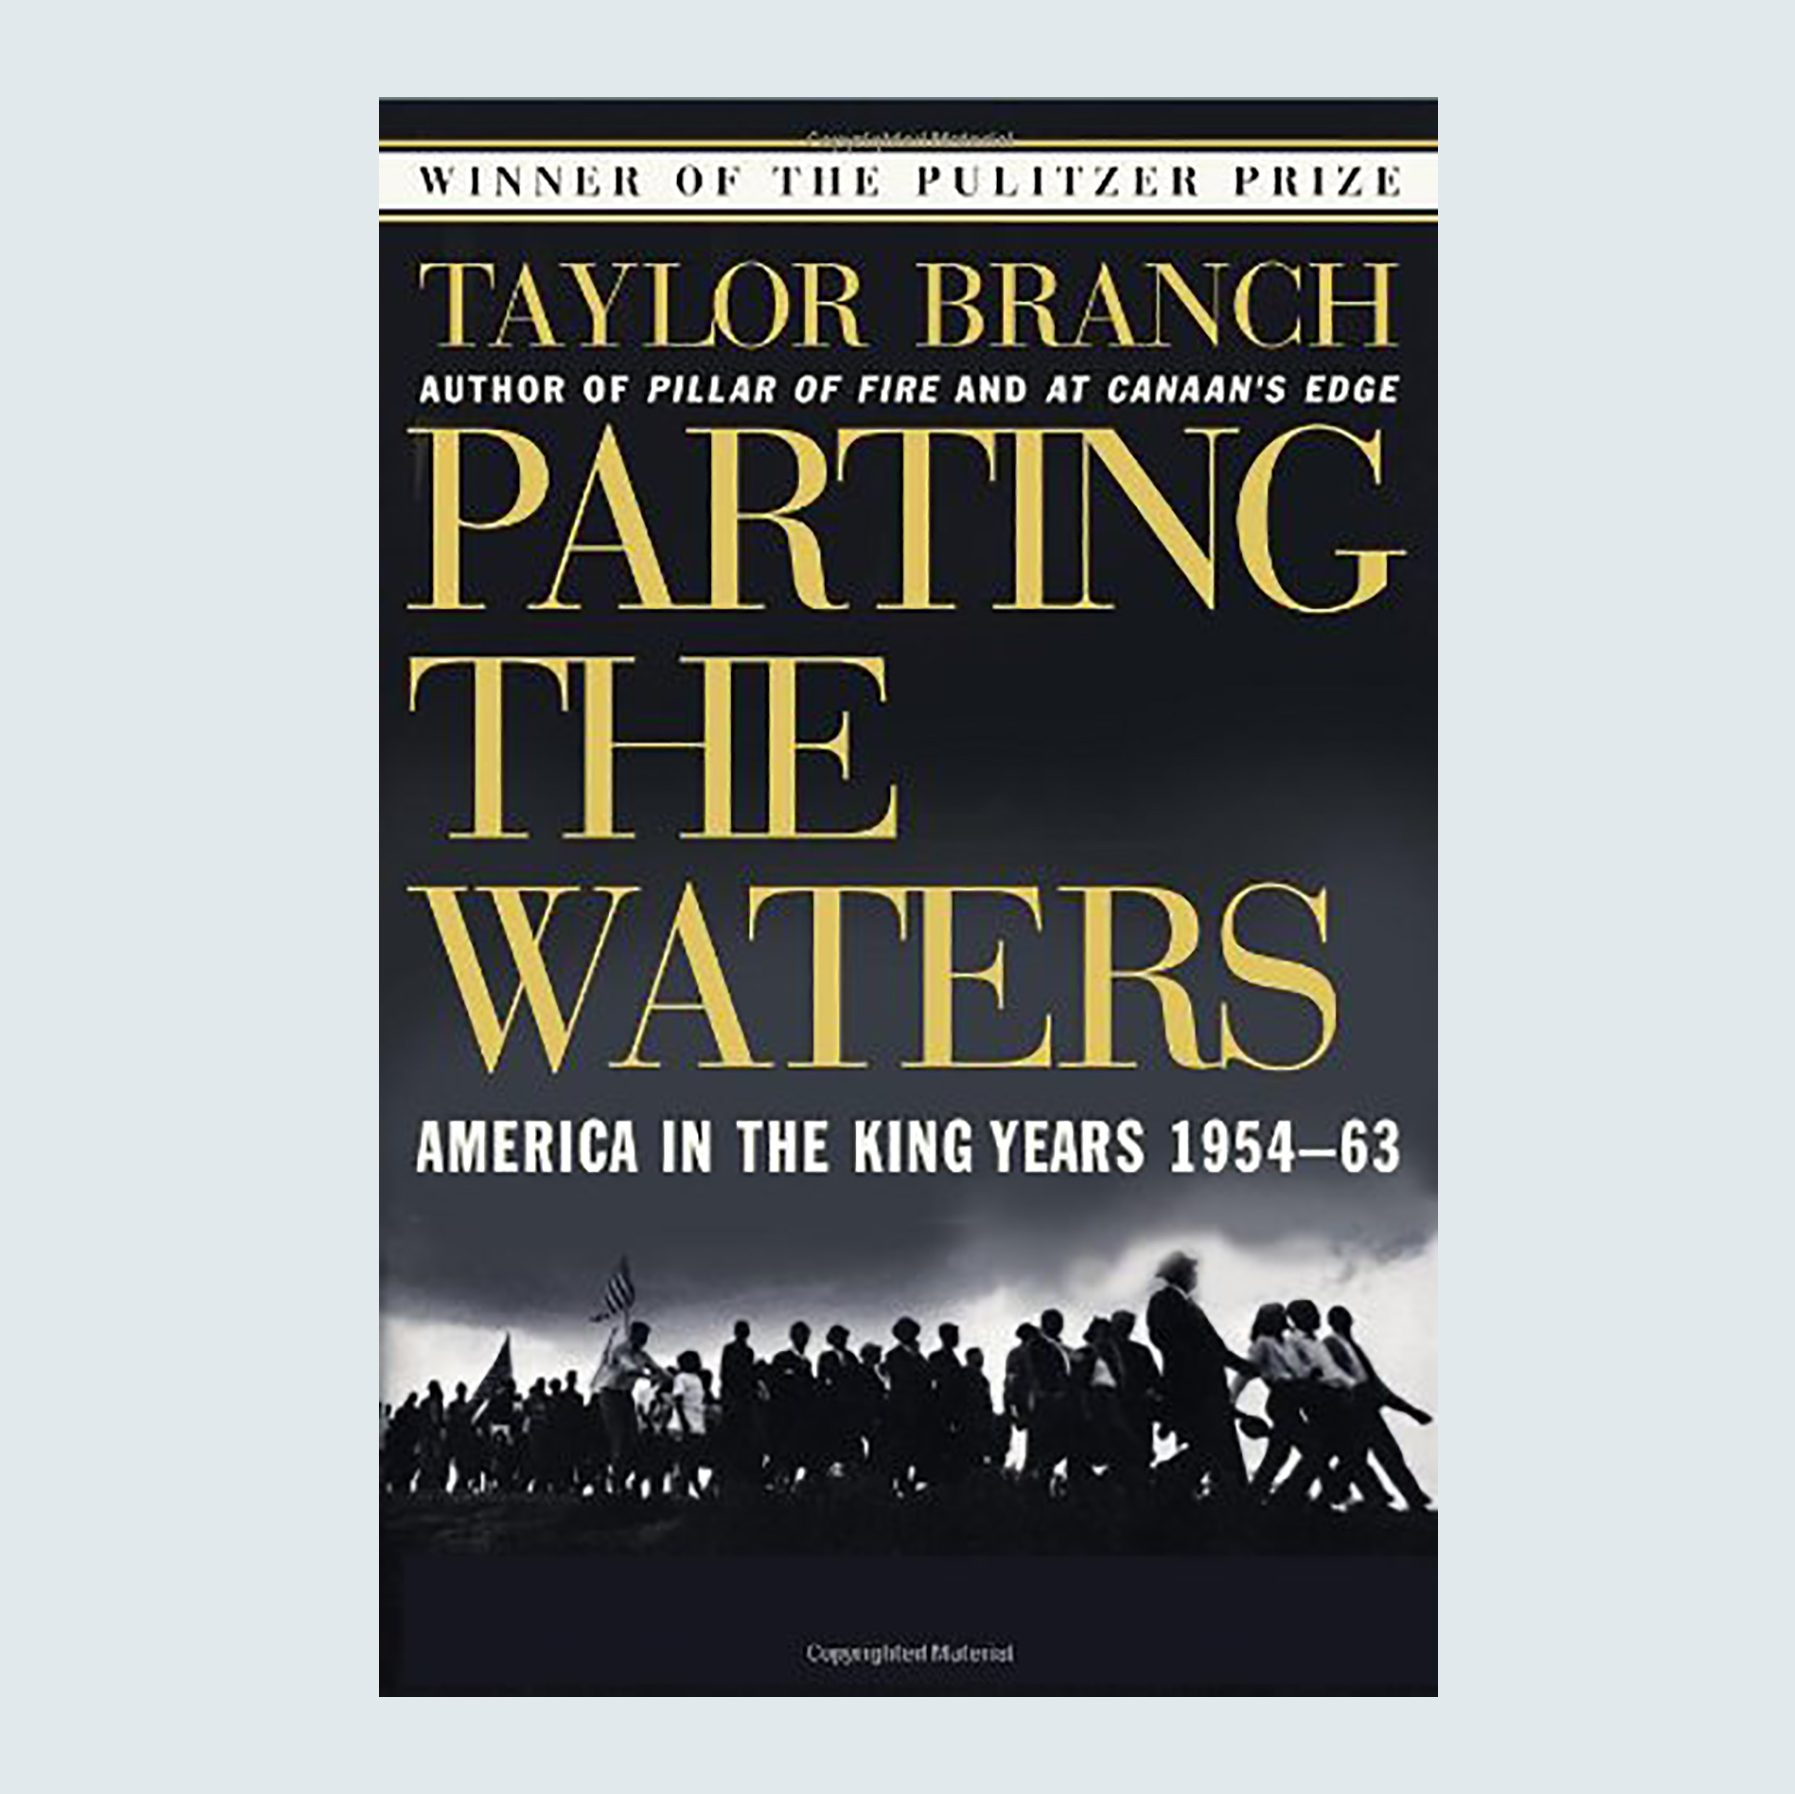 Parting the Waters: America in the King Years, 1954–63 by Taylor Branch